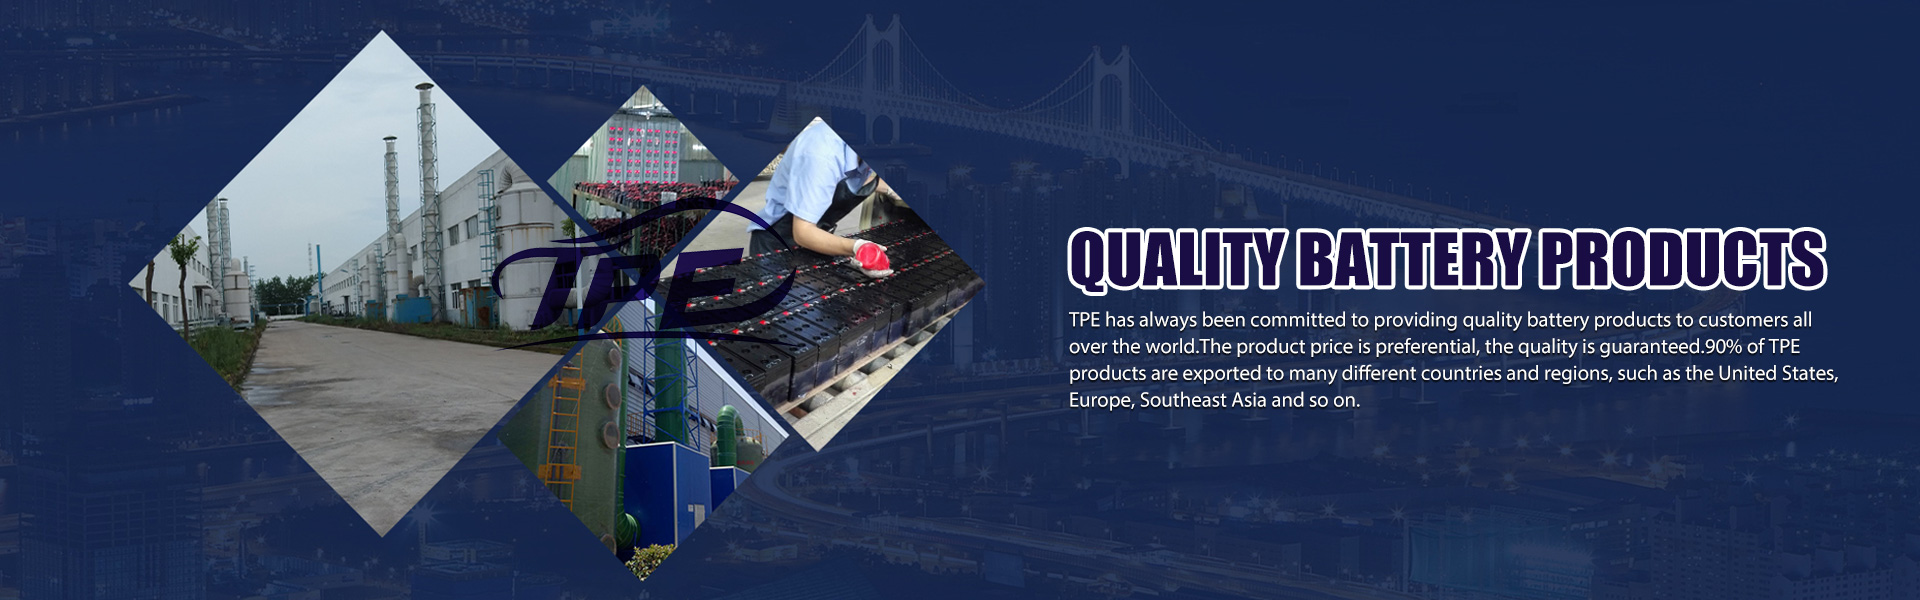 Quality-Battery-Products-Banner-03